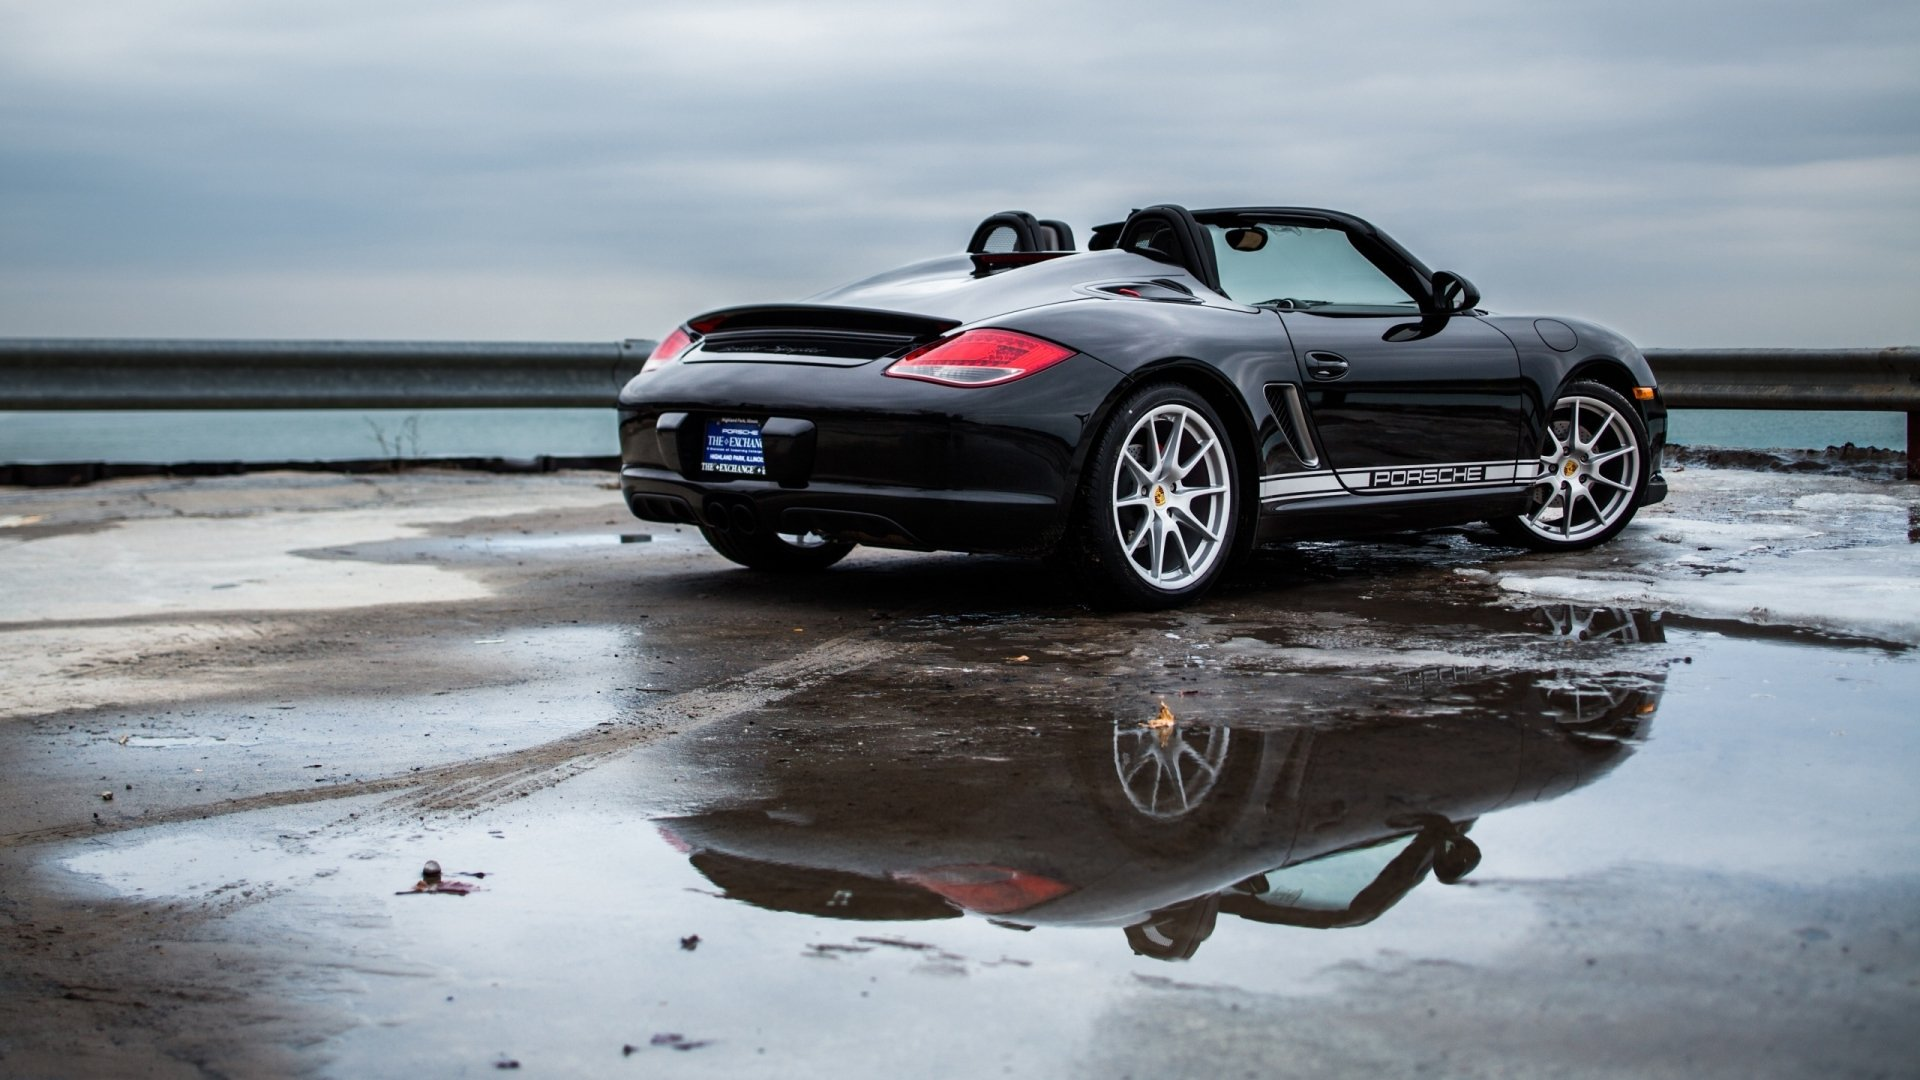 36 Porsche Boxster Hd Wallpapers Background Images Wallpaper Abyss